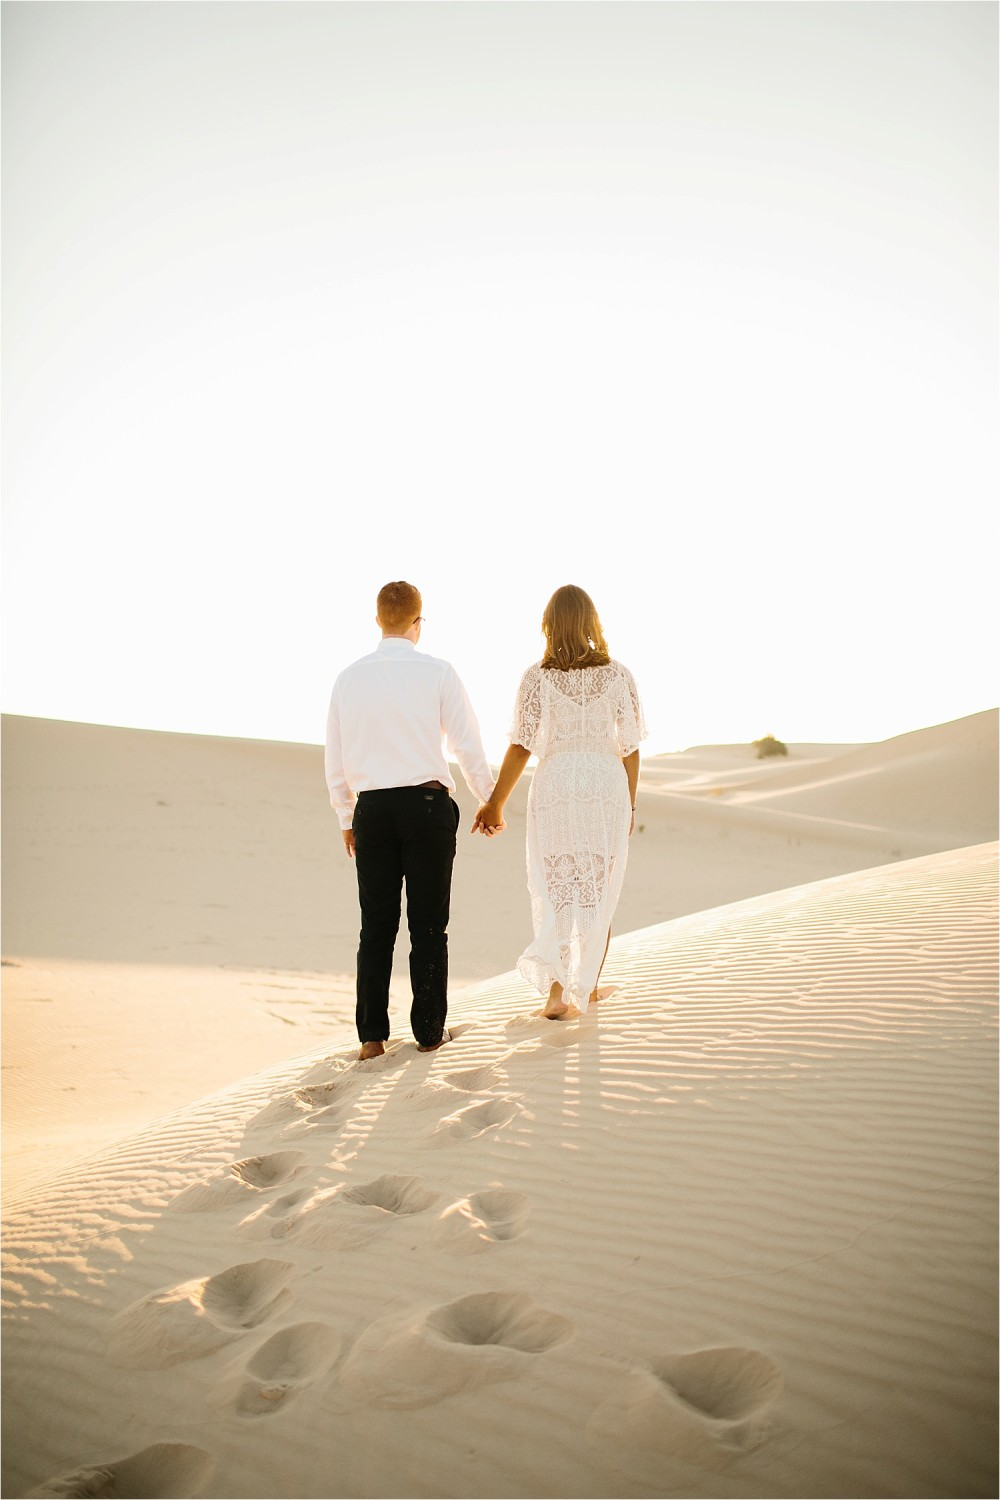 Lauren + Jacob __ a monahans sand dunes engagement session at sunrise by North Texas Wedding Photographer, Rachel Meagan Photography __ 24